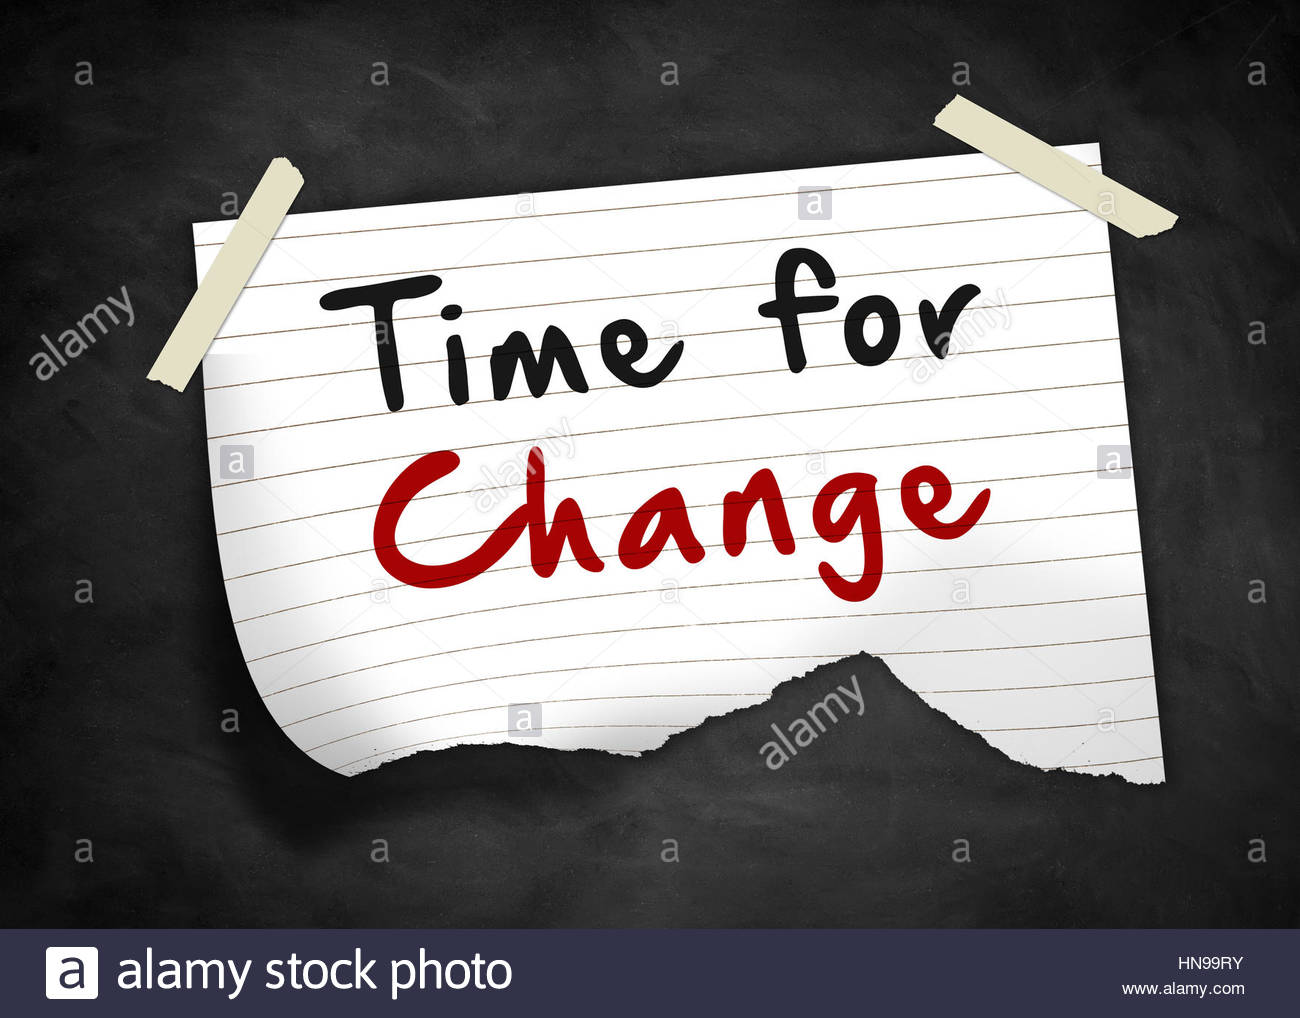 Time for Change - note message - Stock Image